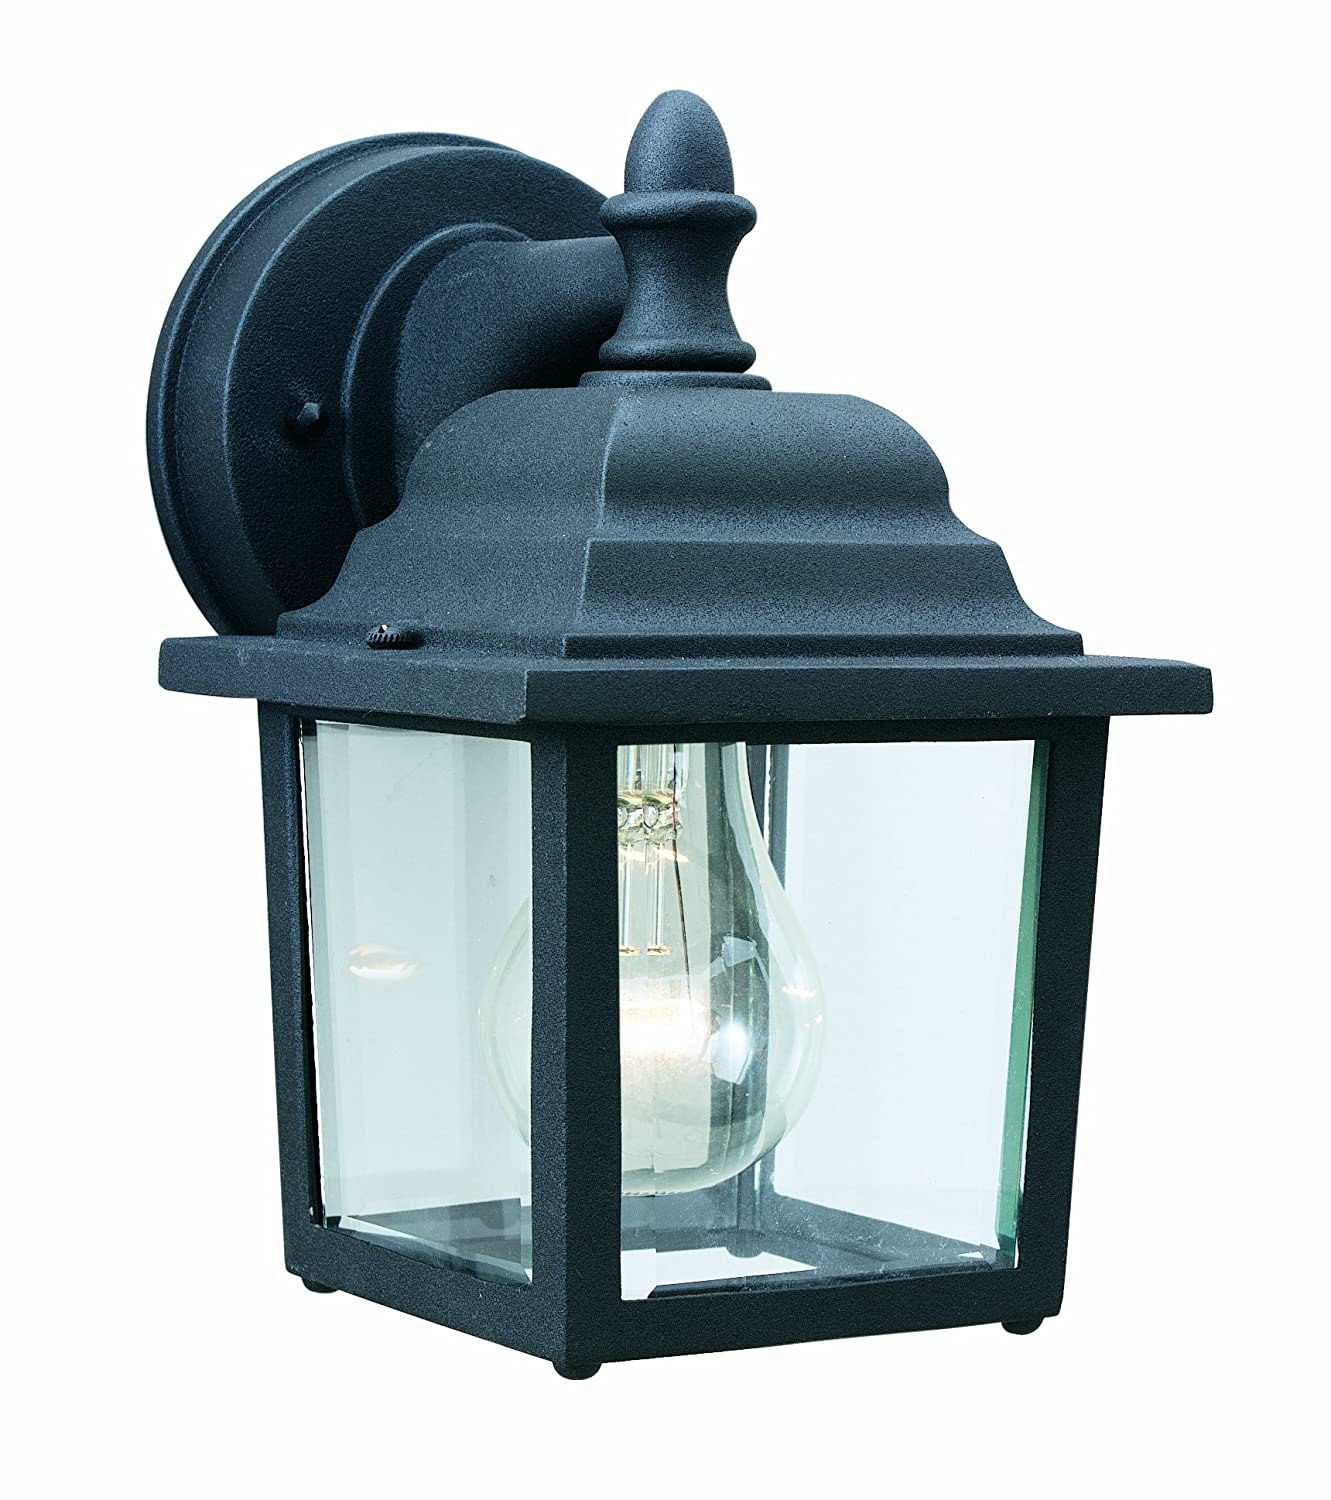 Thomas lighting sl9422 7 hawthorne one light outdoor wall lantern thomas lighting sl9422 7 hawthorne one light outdoor wall lantern matte black wall porch lights amazon aloadofball